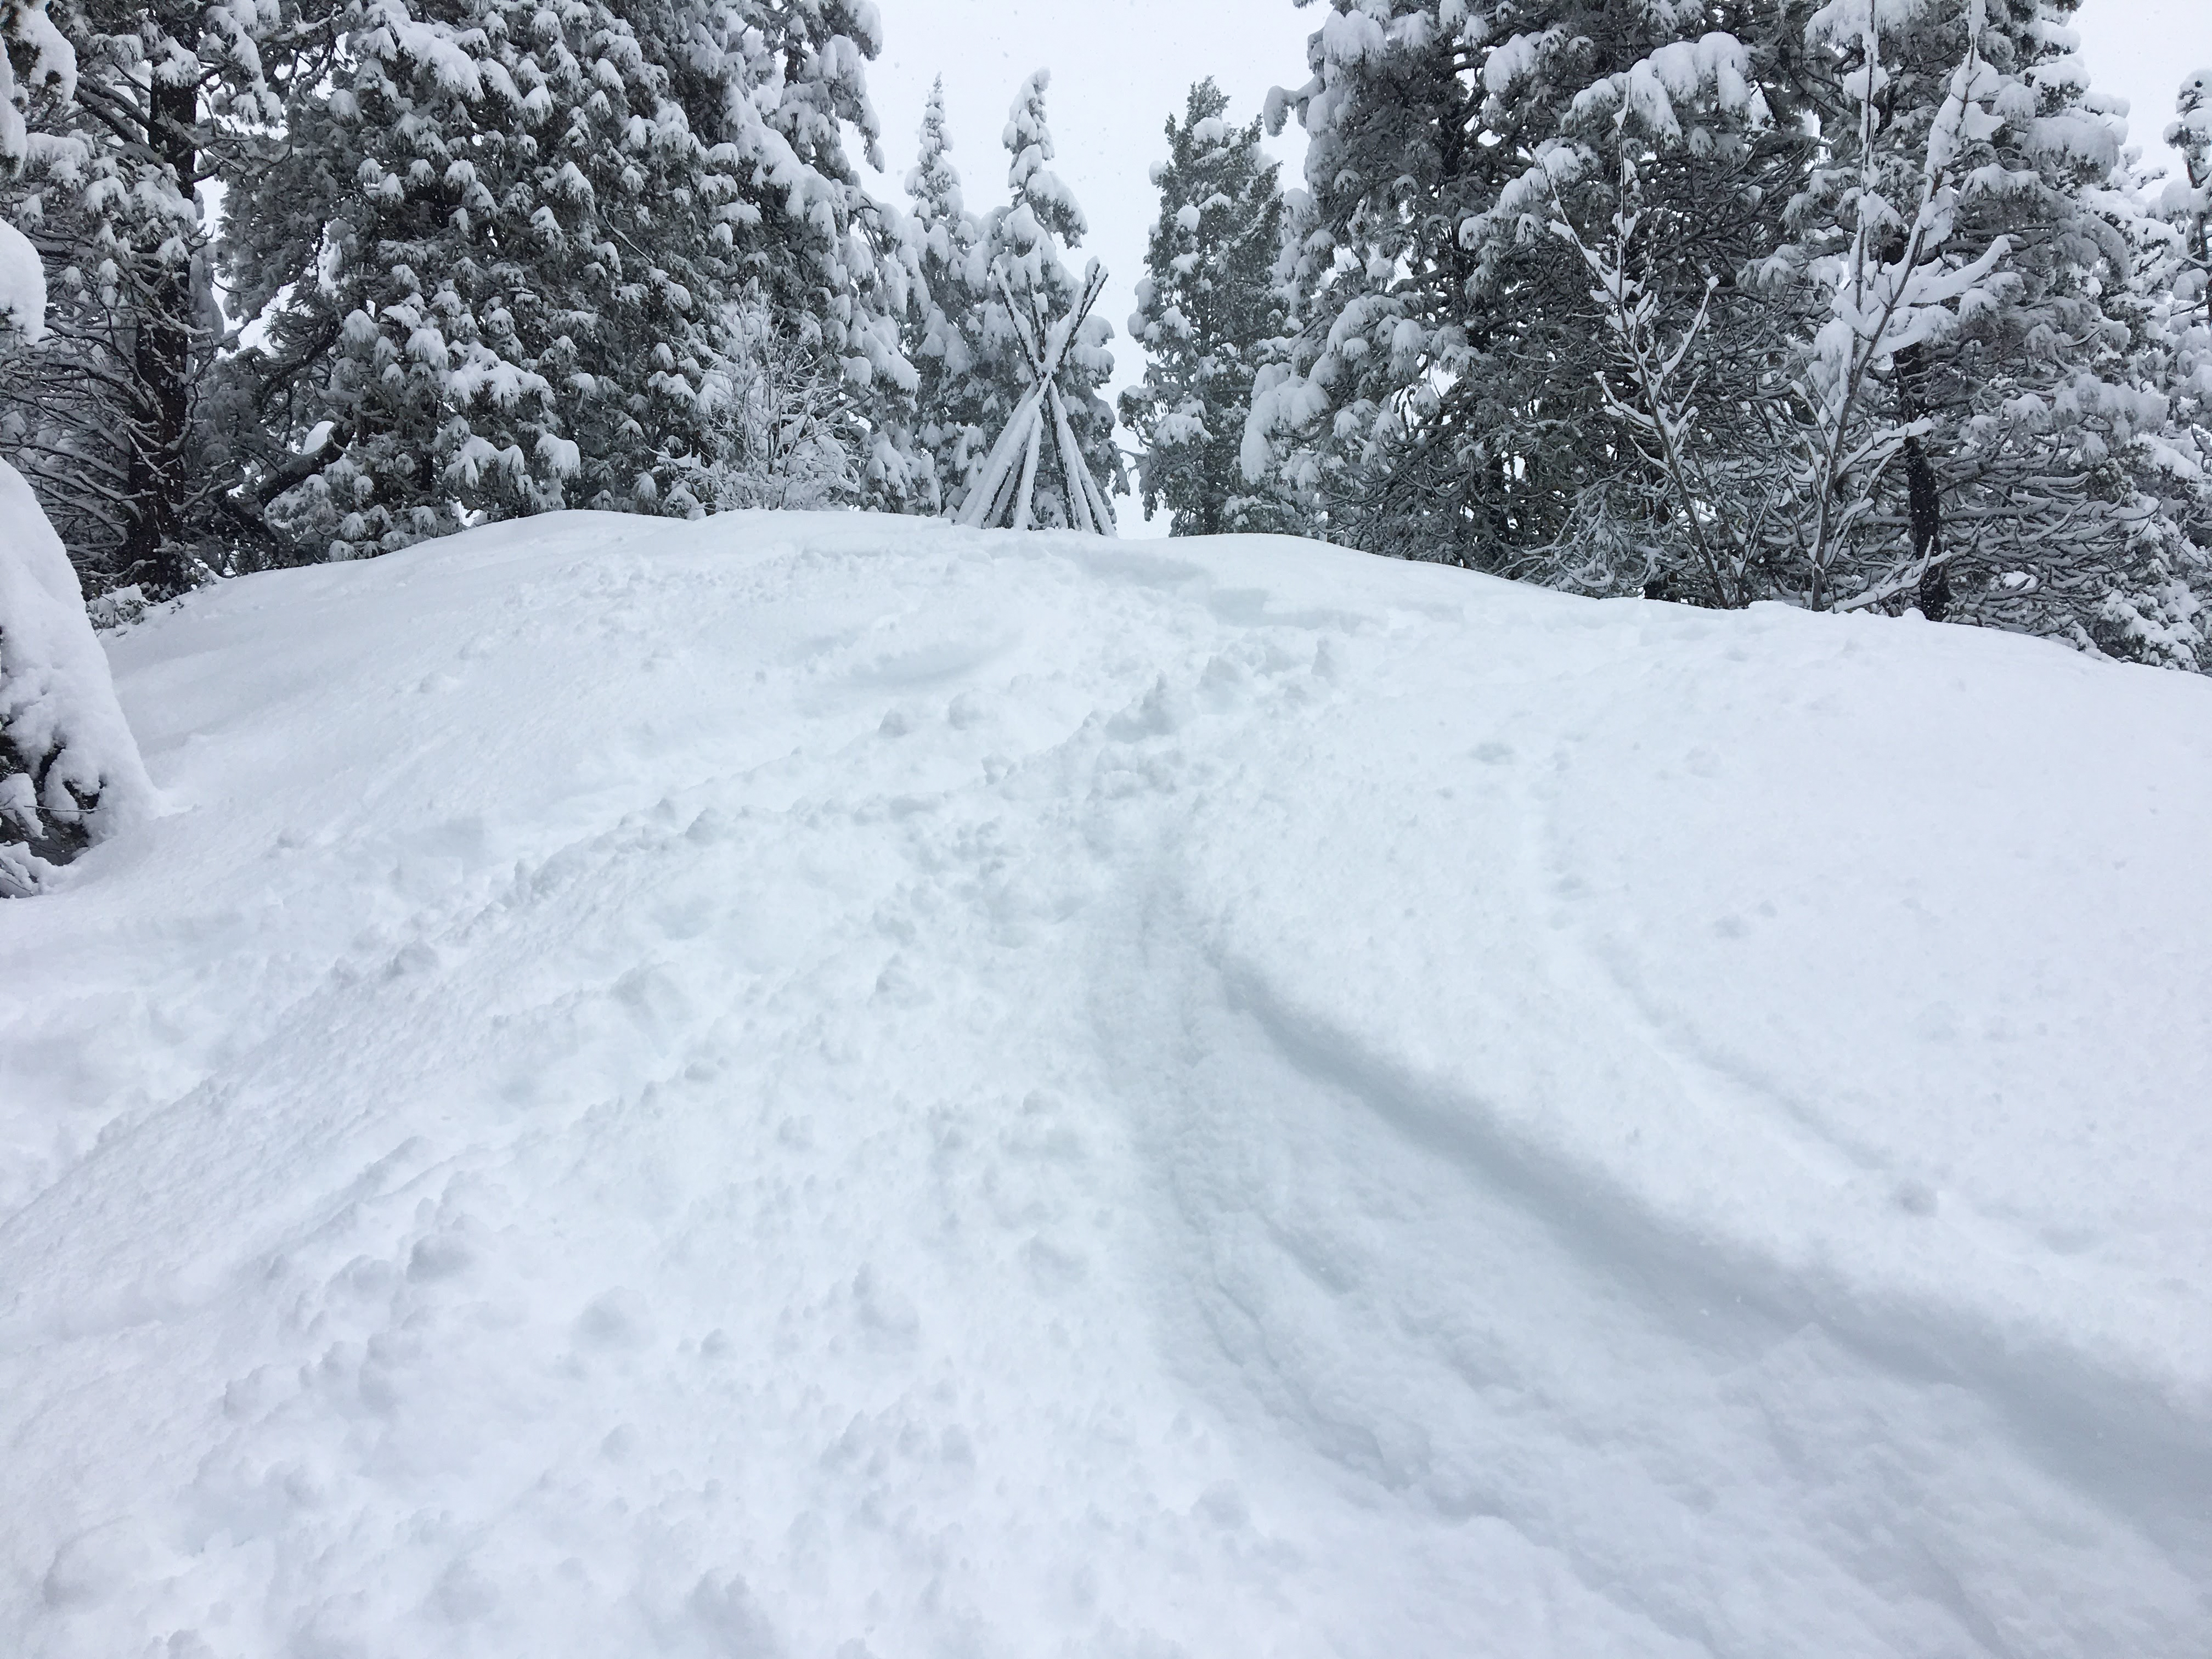 A steep incline and about a foot and a half of snow is all you need for a back country choose your own adventure